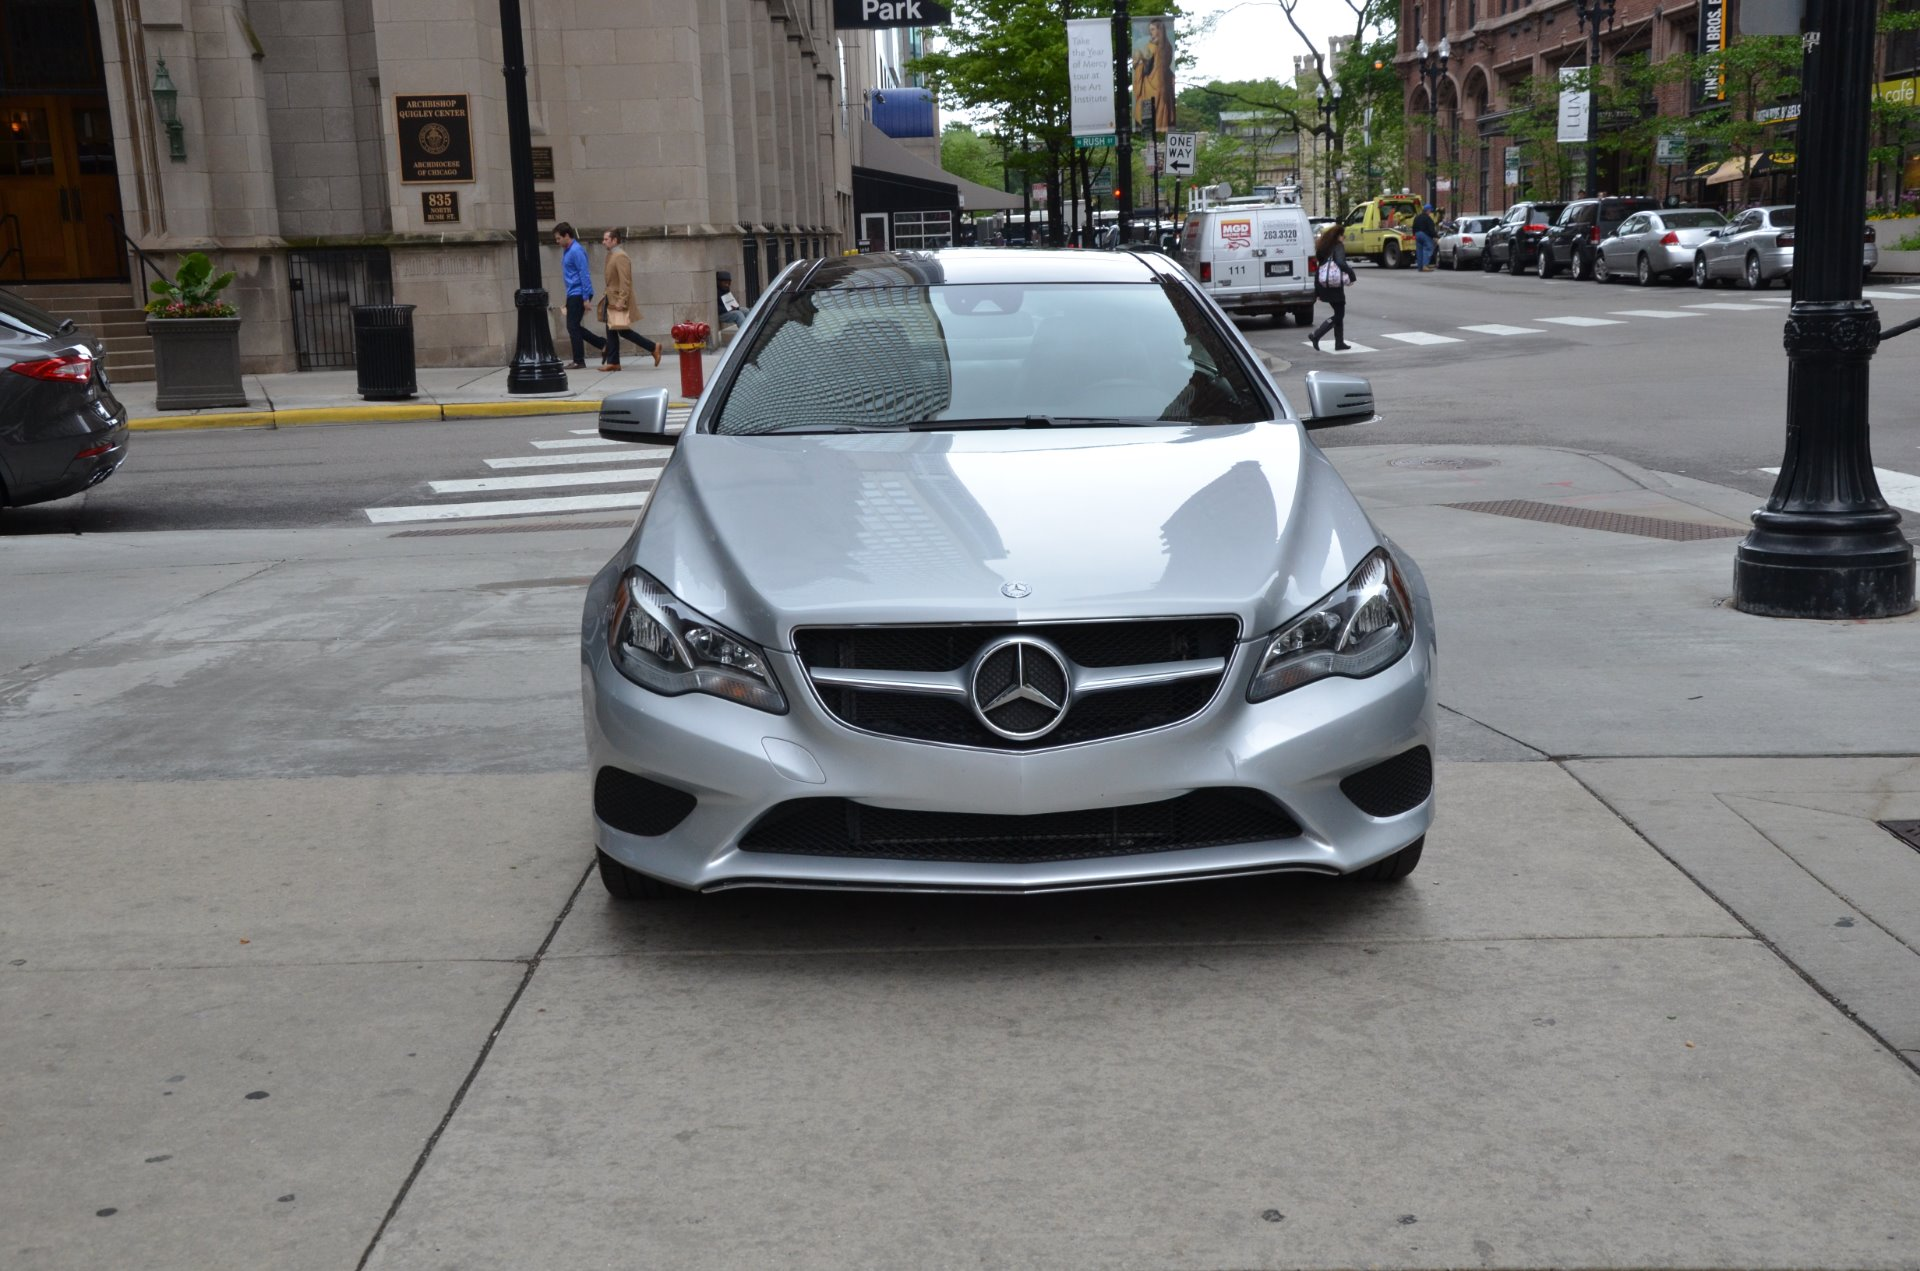 2014 mercedes benz e class e 350 stock 44363 for sale for Mercedes benz dealerships in chicago area